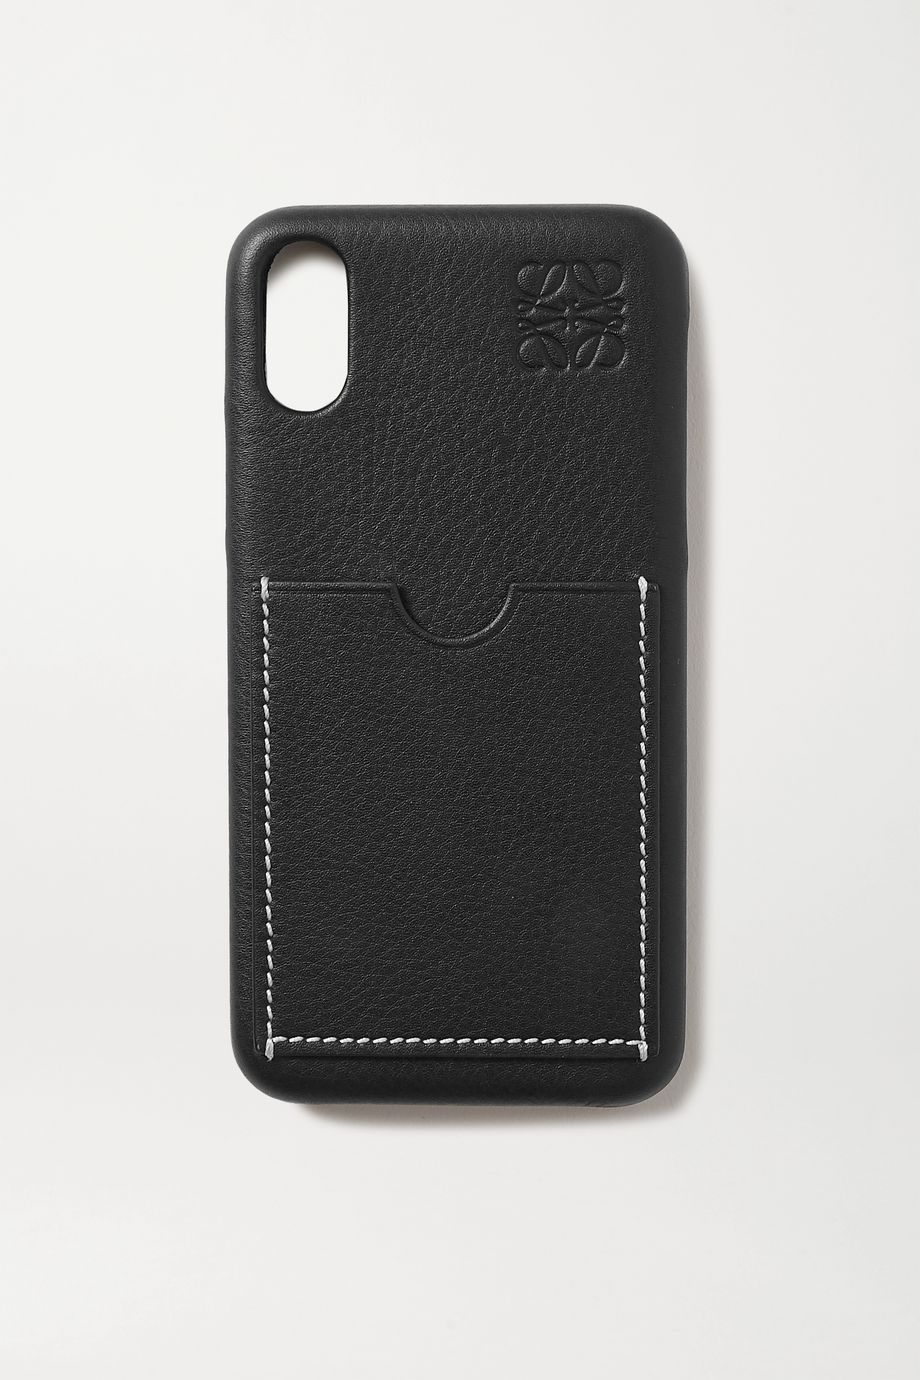 Loewe Textured-leather iPhone X case